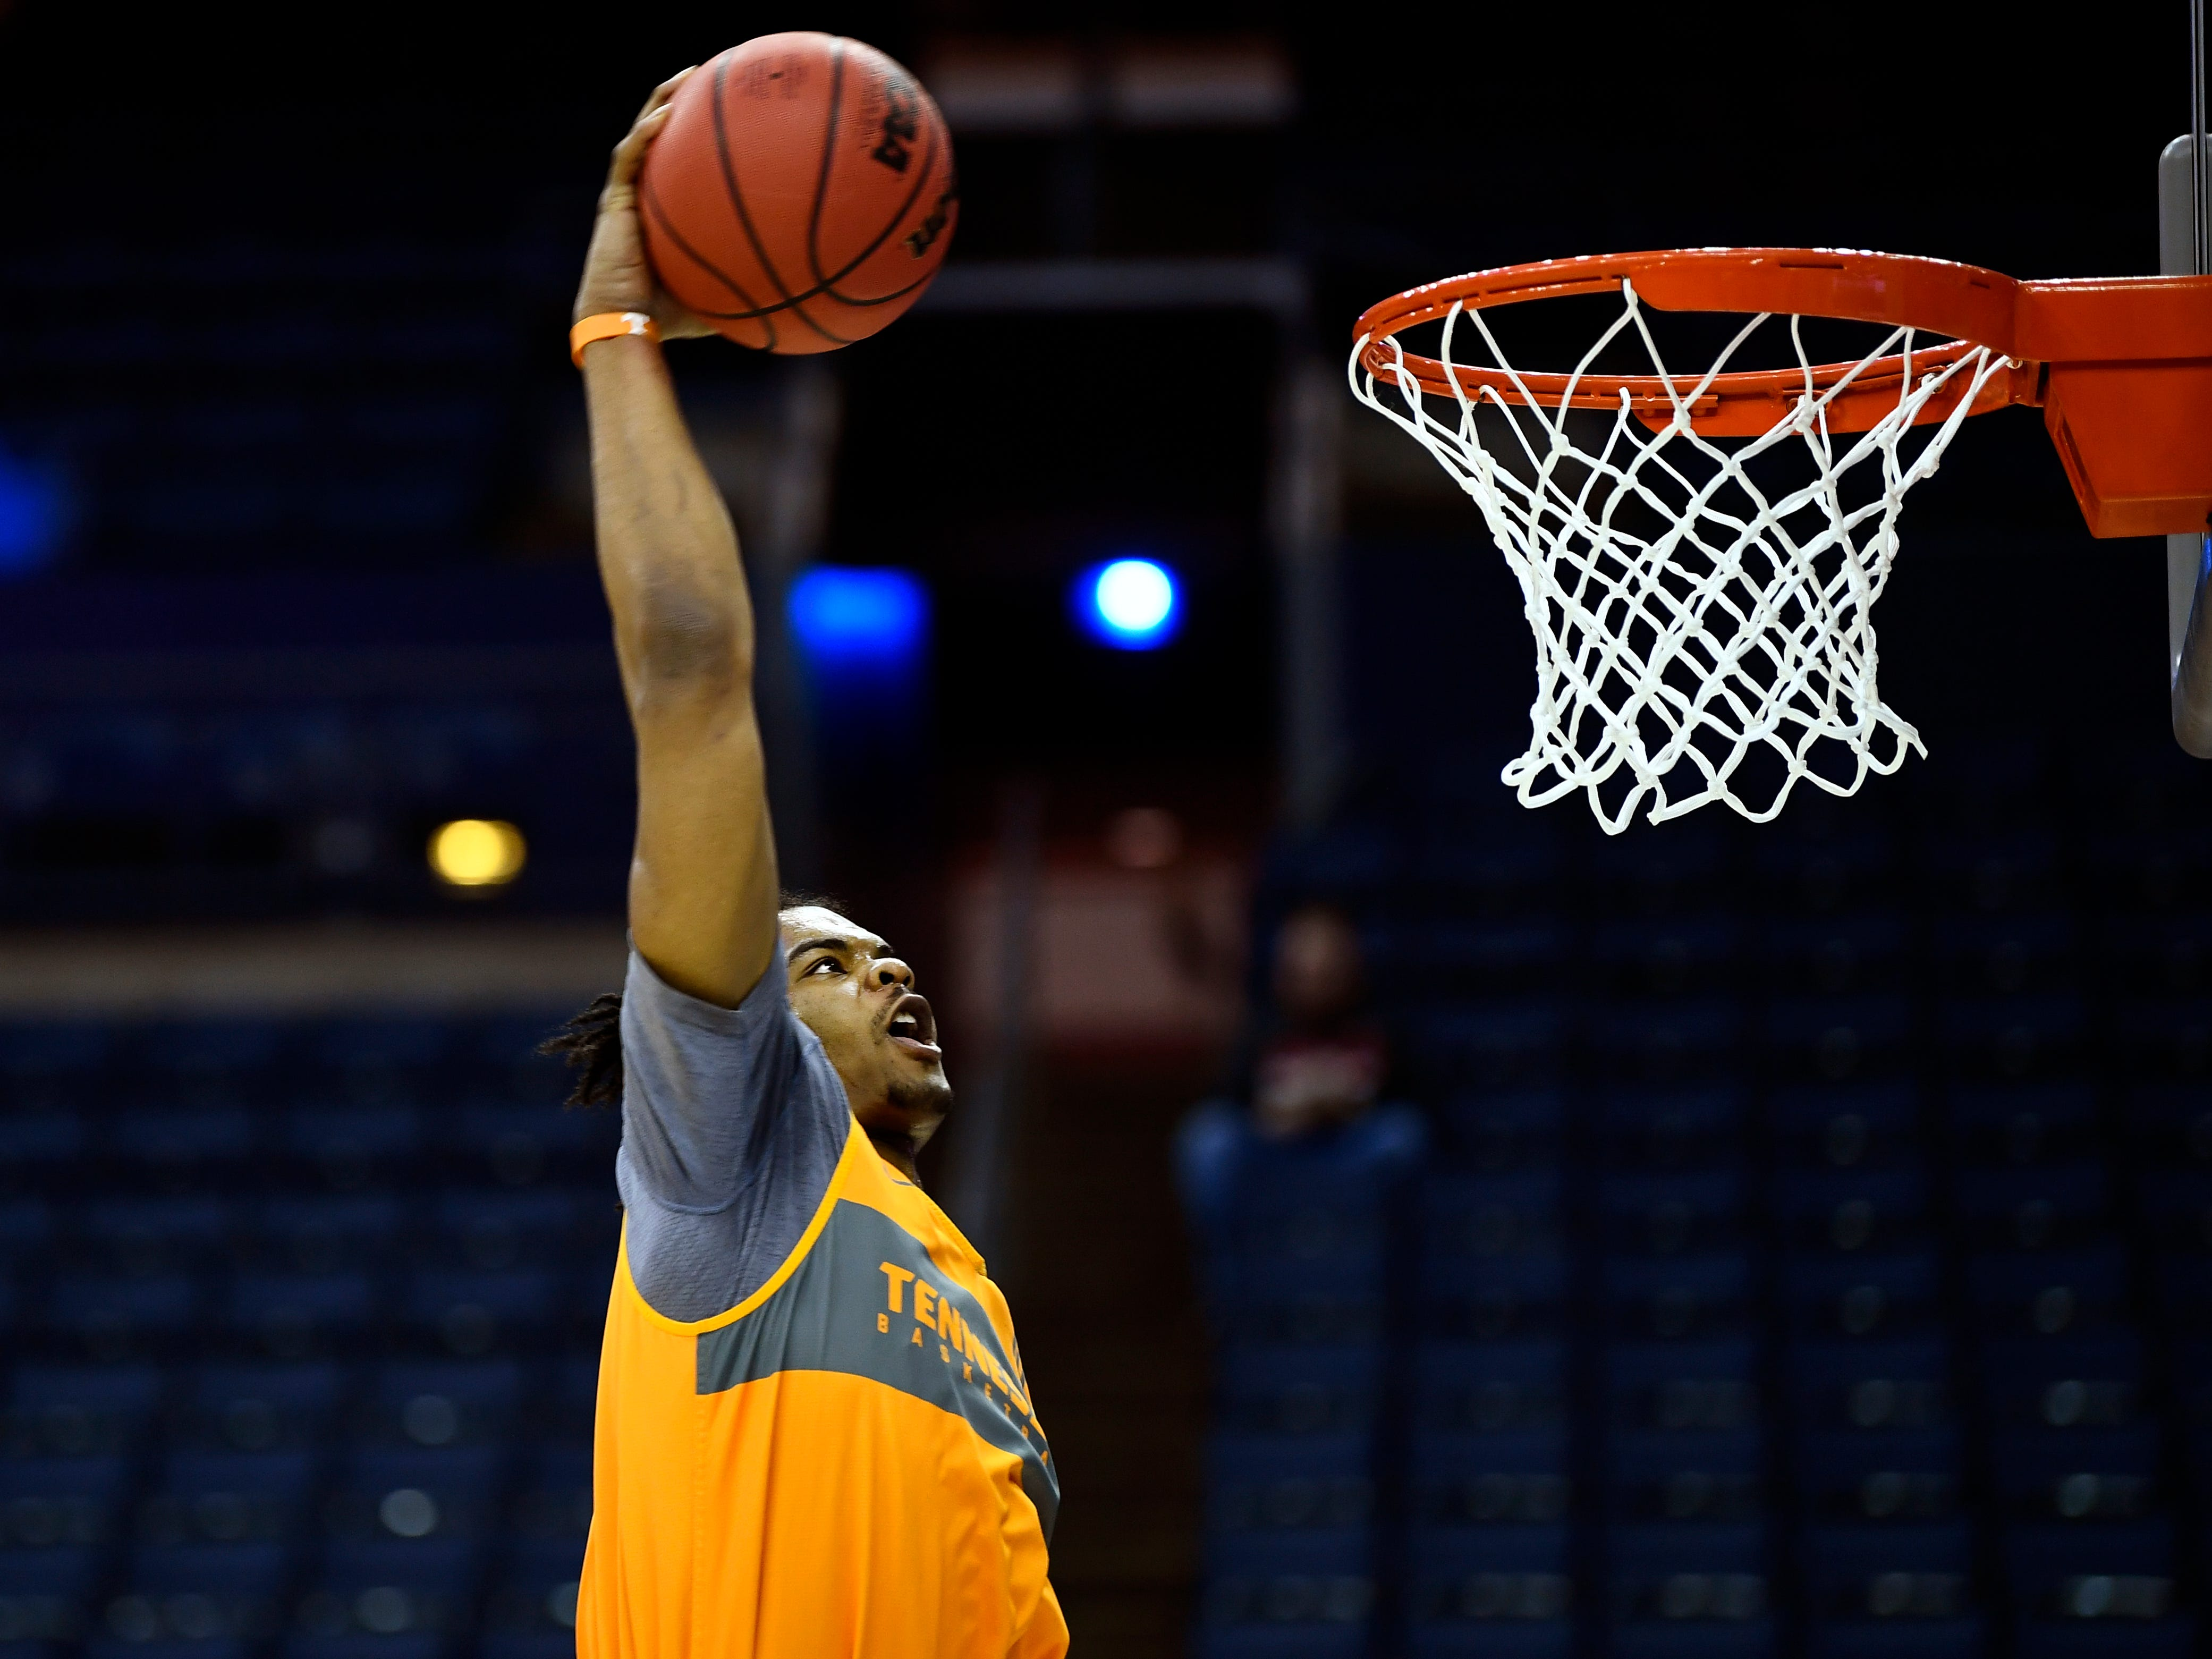 Tennessee forward Derrick Walker (15) dunks the ball during Tennessee's practice on Thursday, March 21, 2019, before their first round NCAA Tournament game against Colgate at Nationwide Arena in Columbus, Ohio.